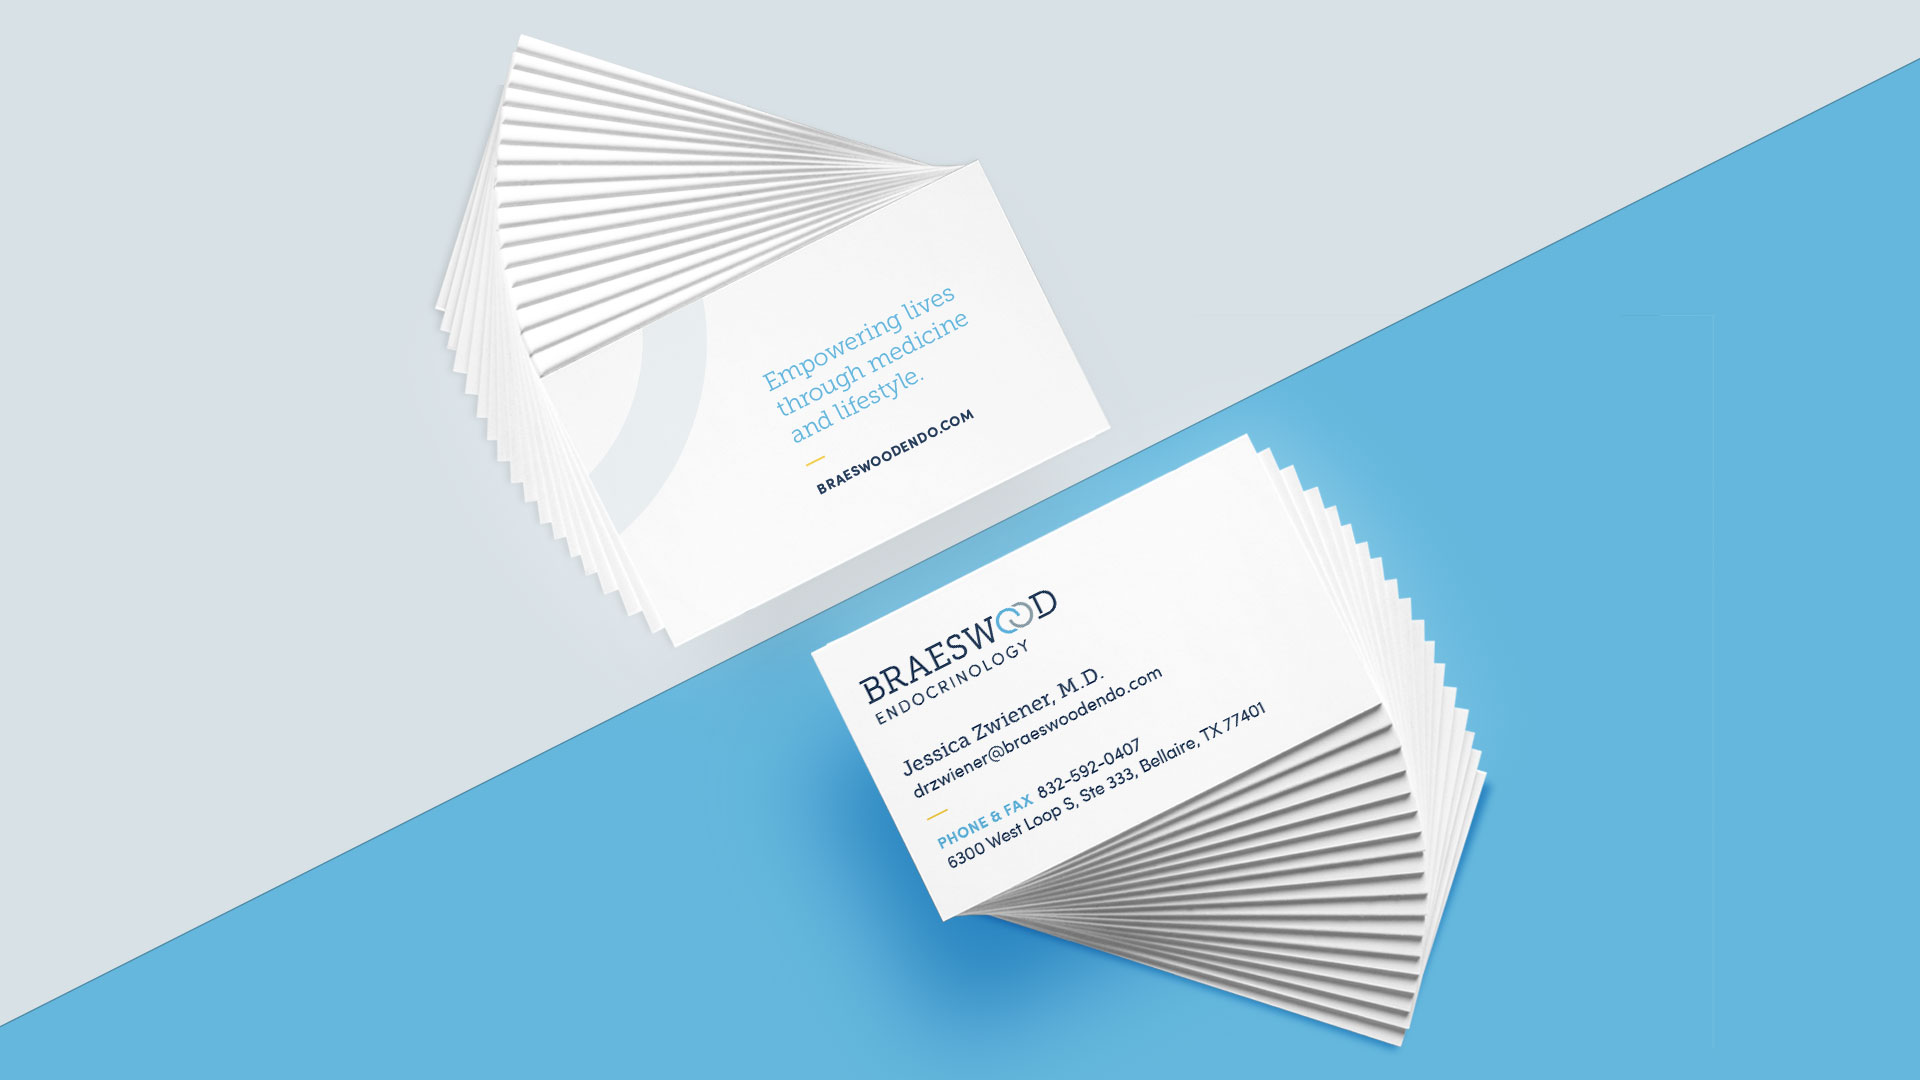 Braeswood Endocrinology medical practice business cards